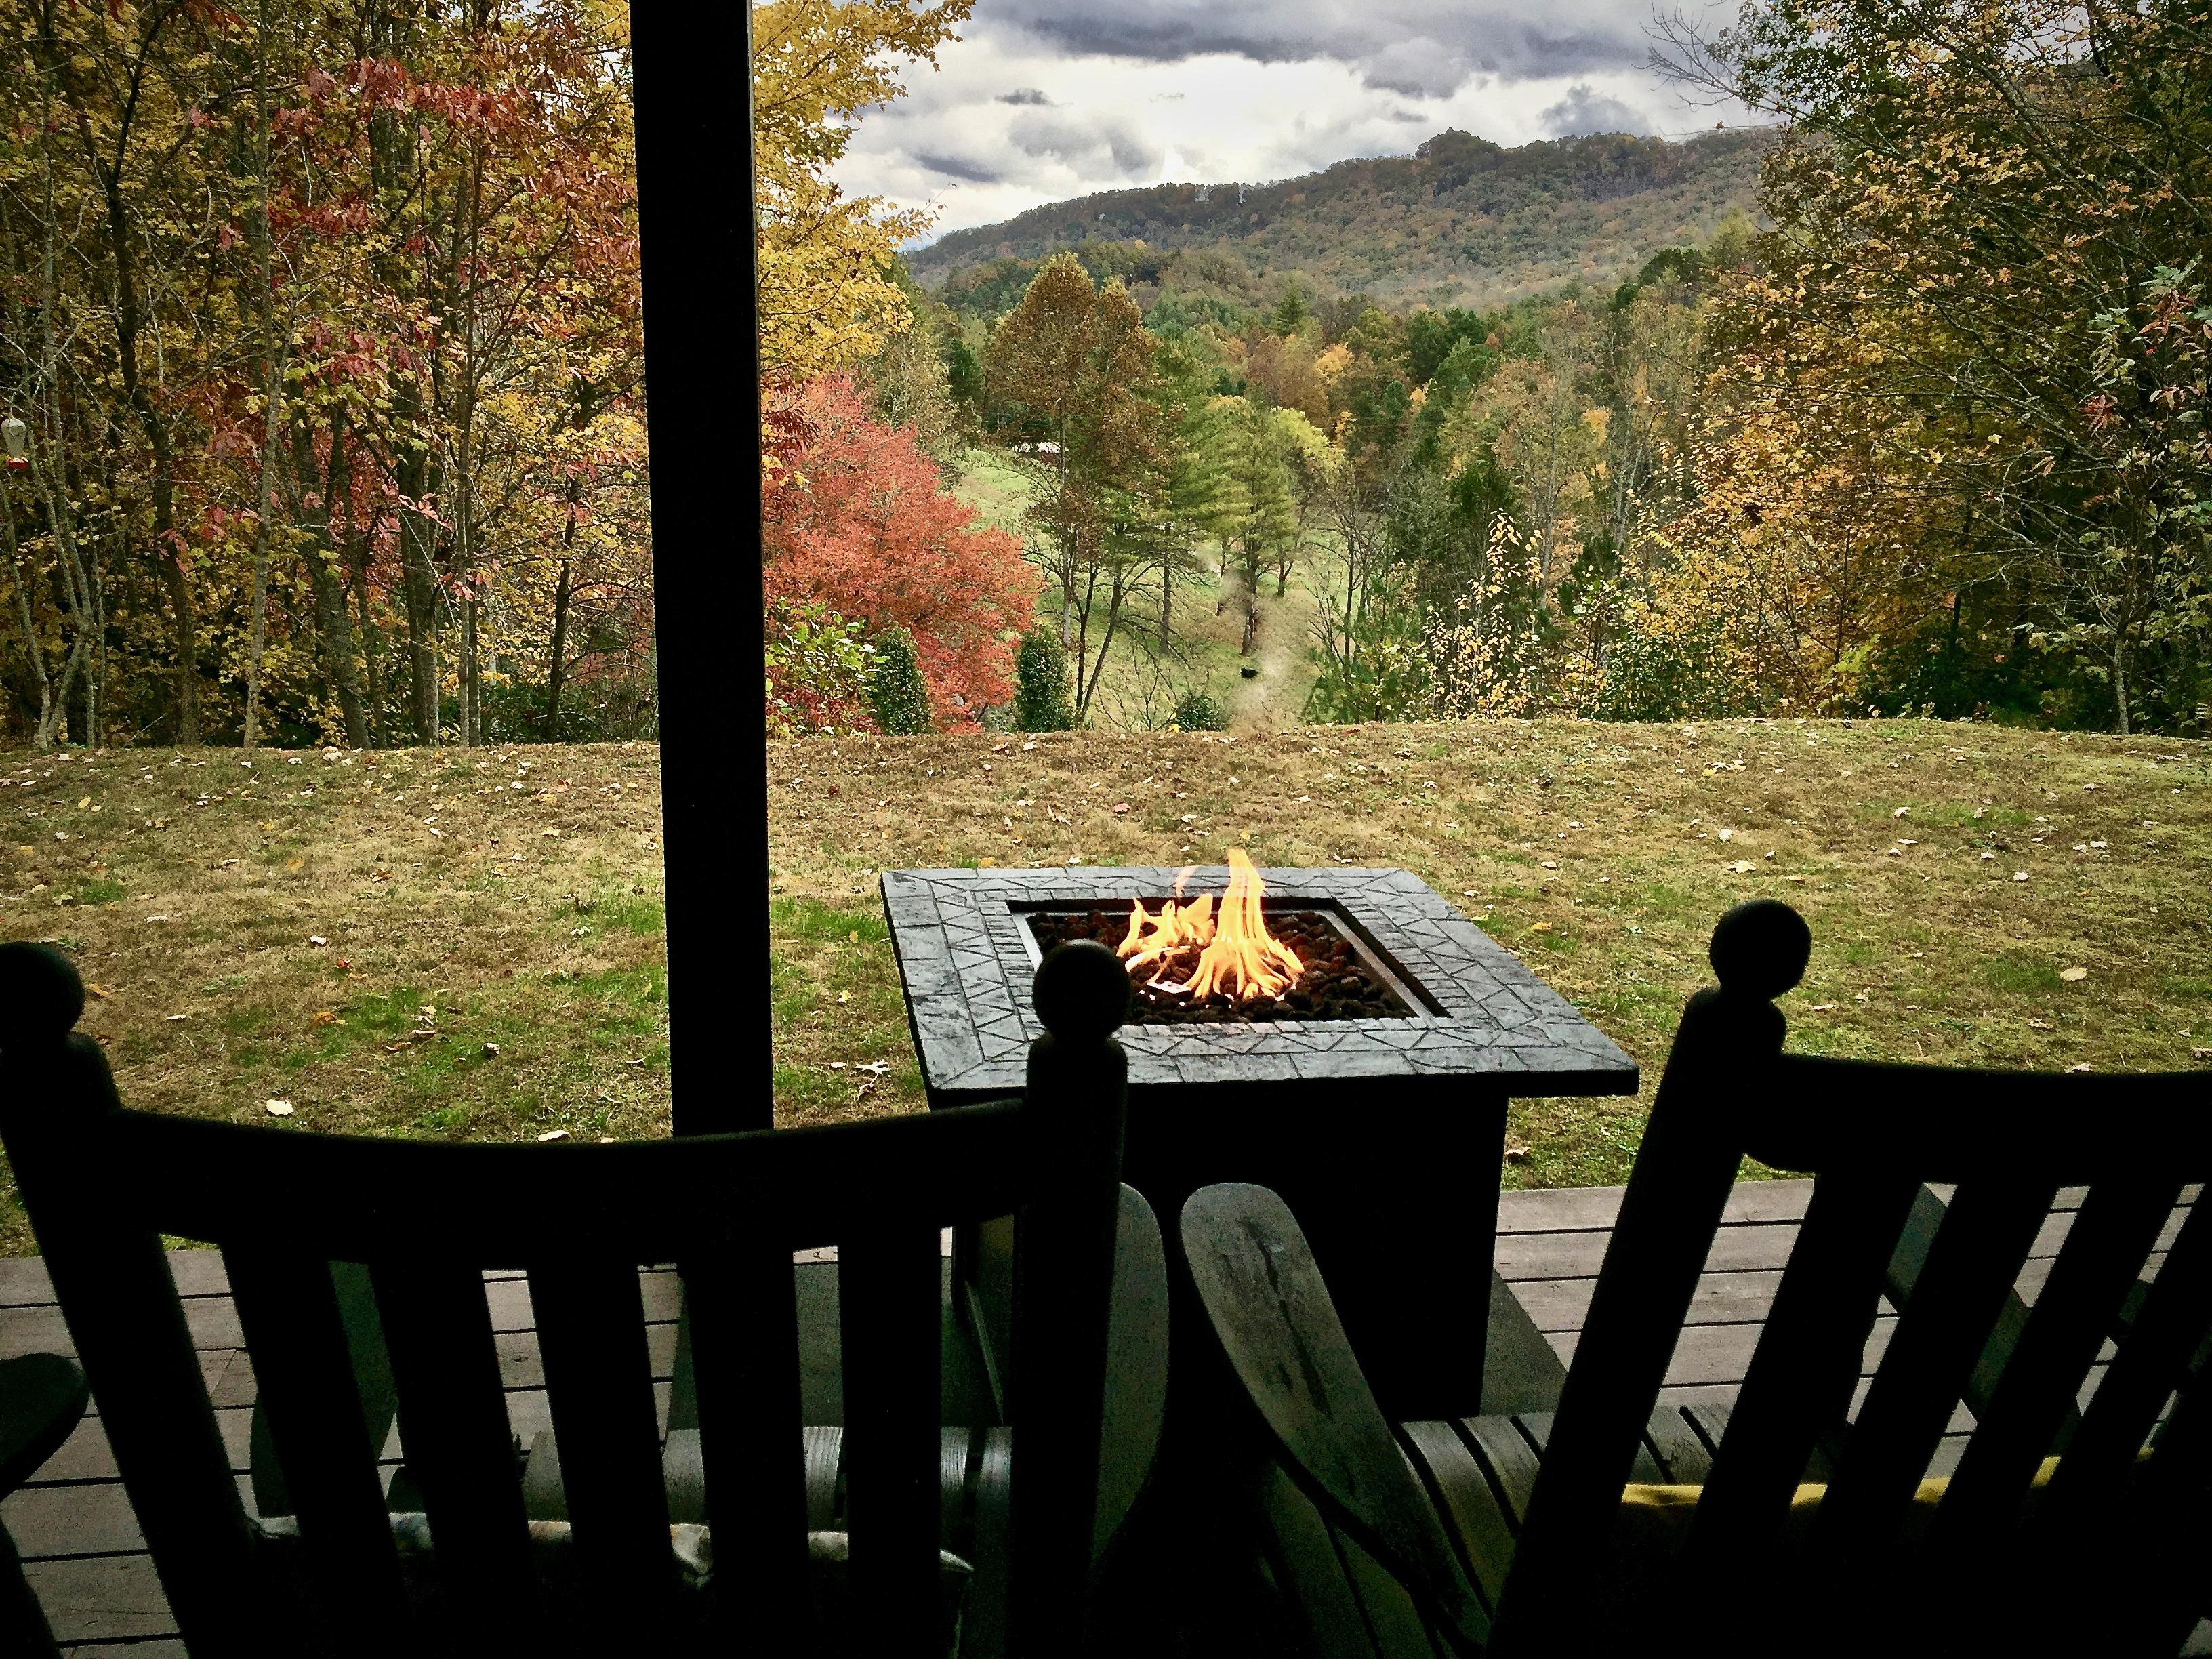 Relax by the Fire Pit and Enjoy the Views...